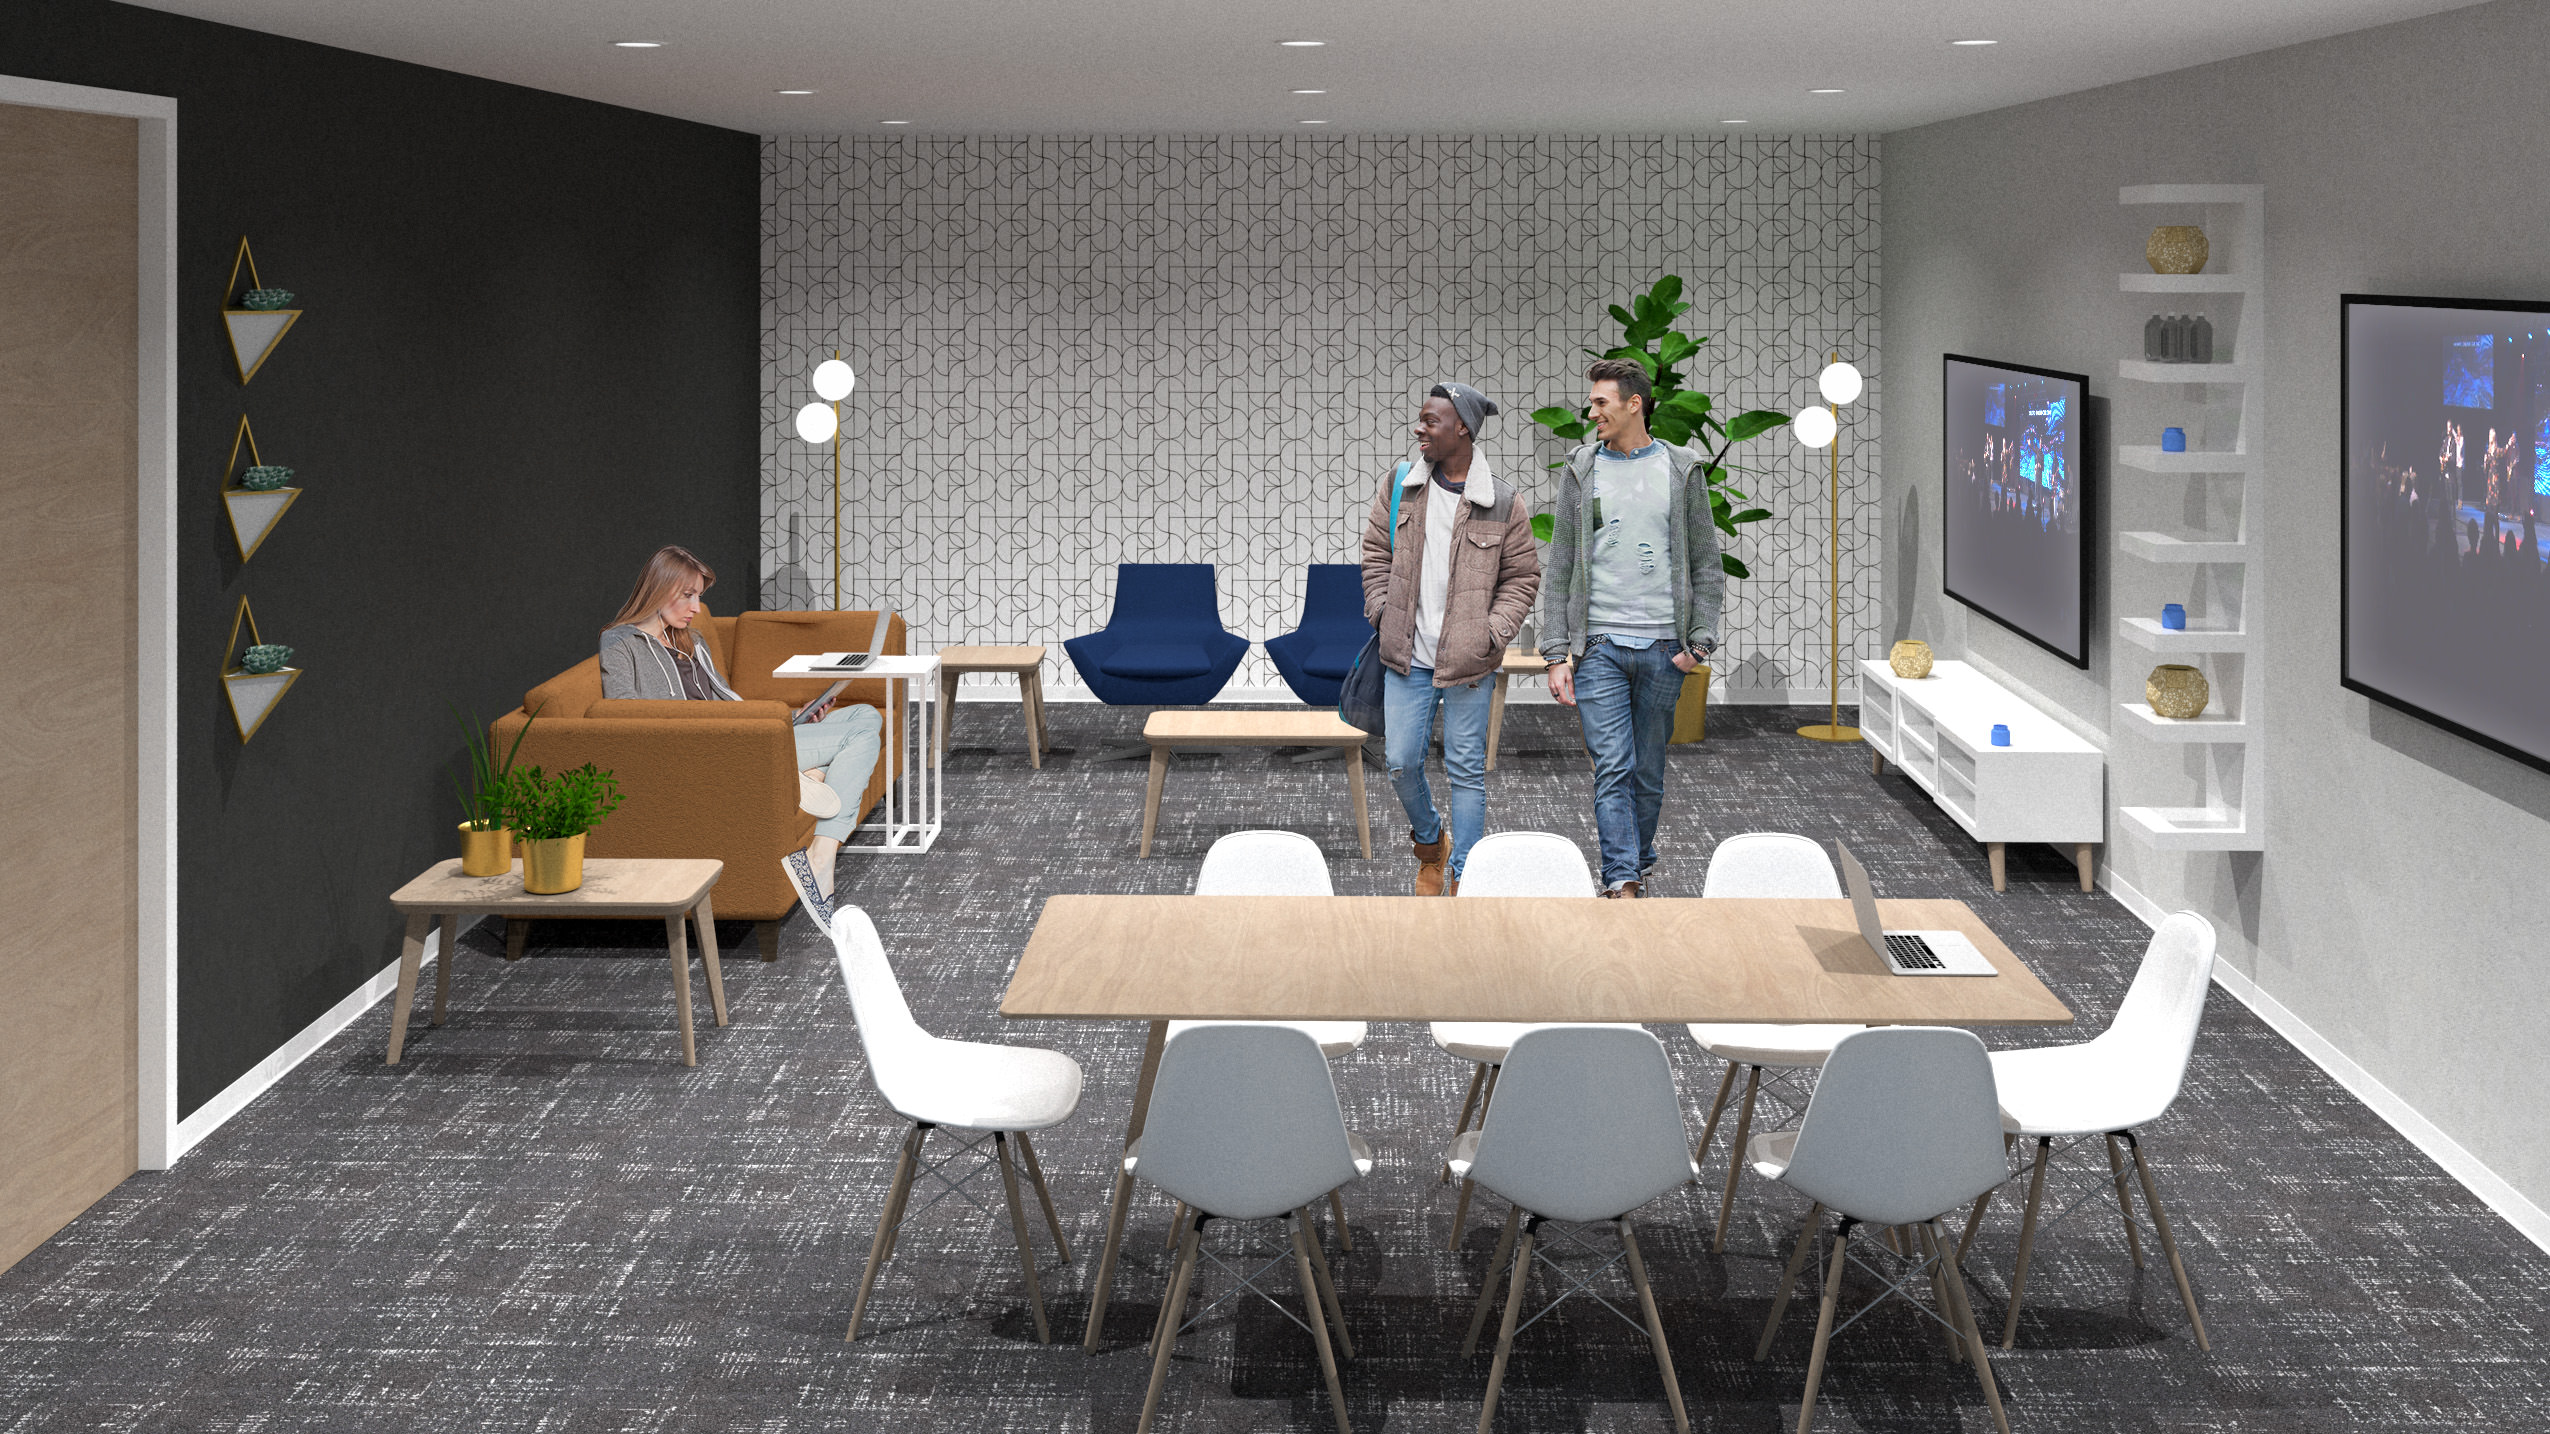 Rendering of a meeting room with people